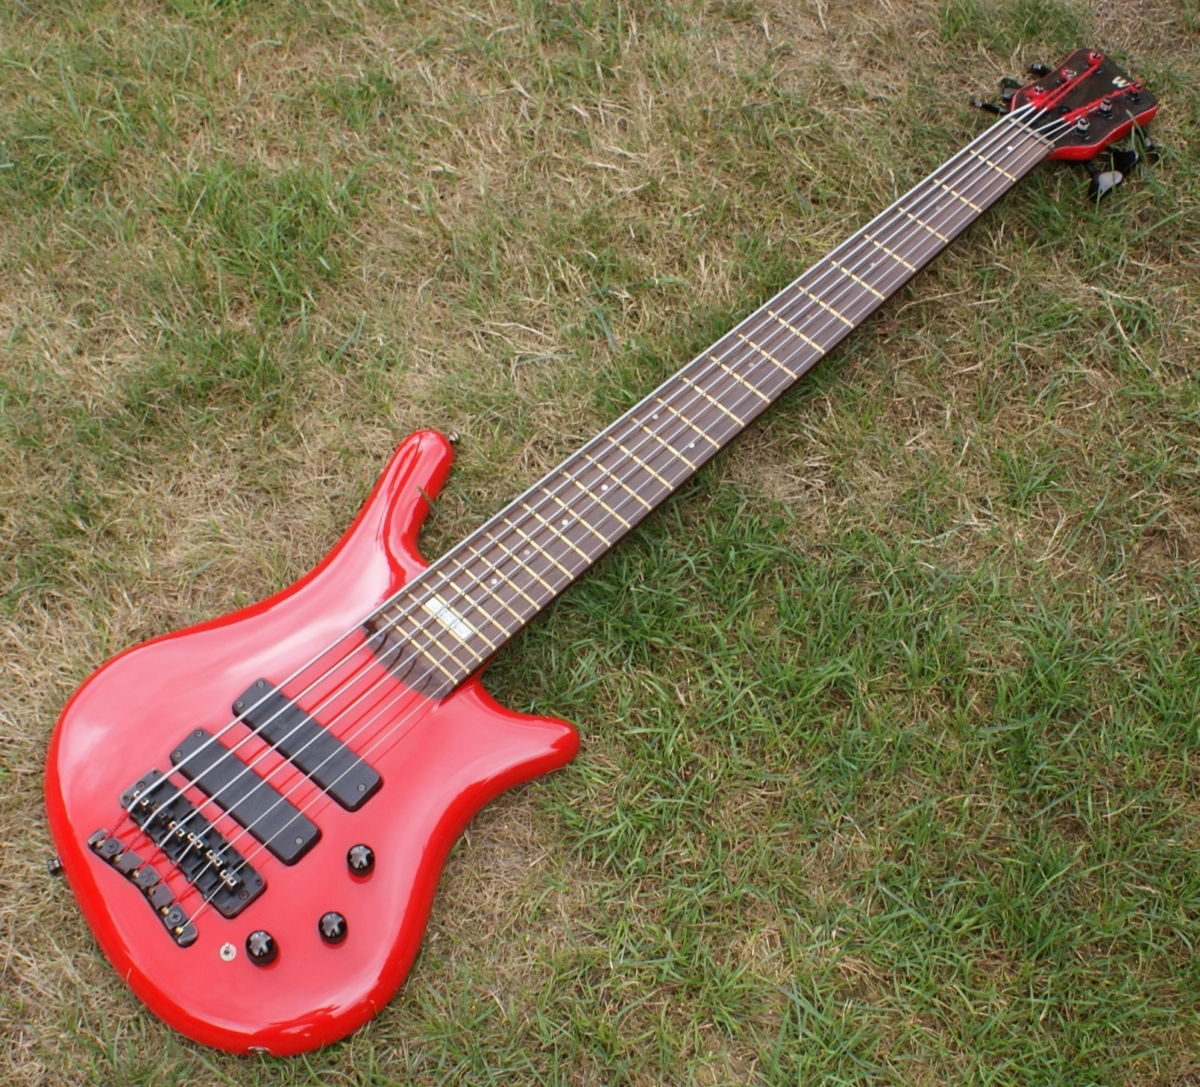 superb red 1991 warwick 6 string custom thumb bass sims fret lights ex mario cipollina huey. Black Bedroom Furniture Sets. Home Design Ideas